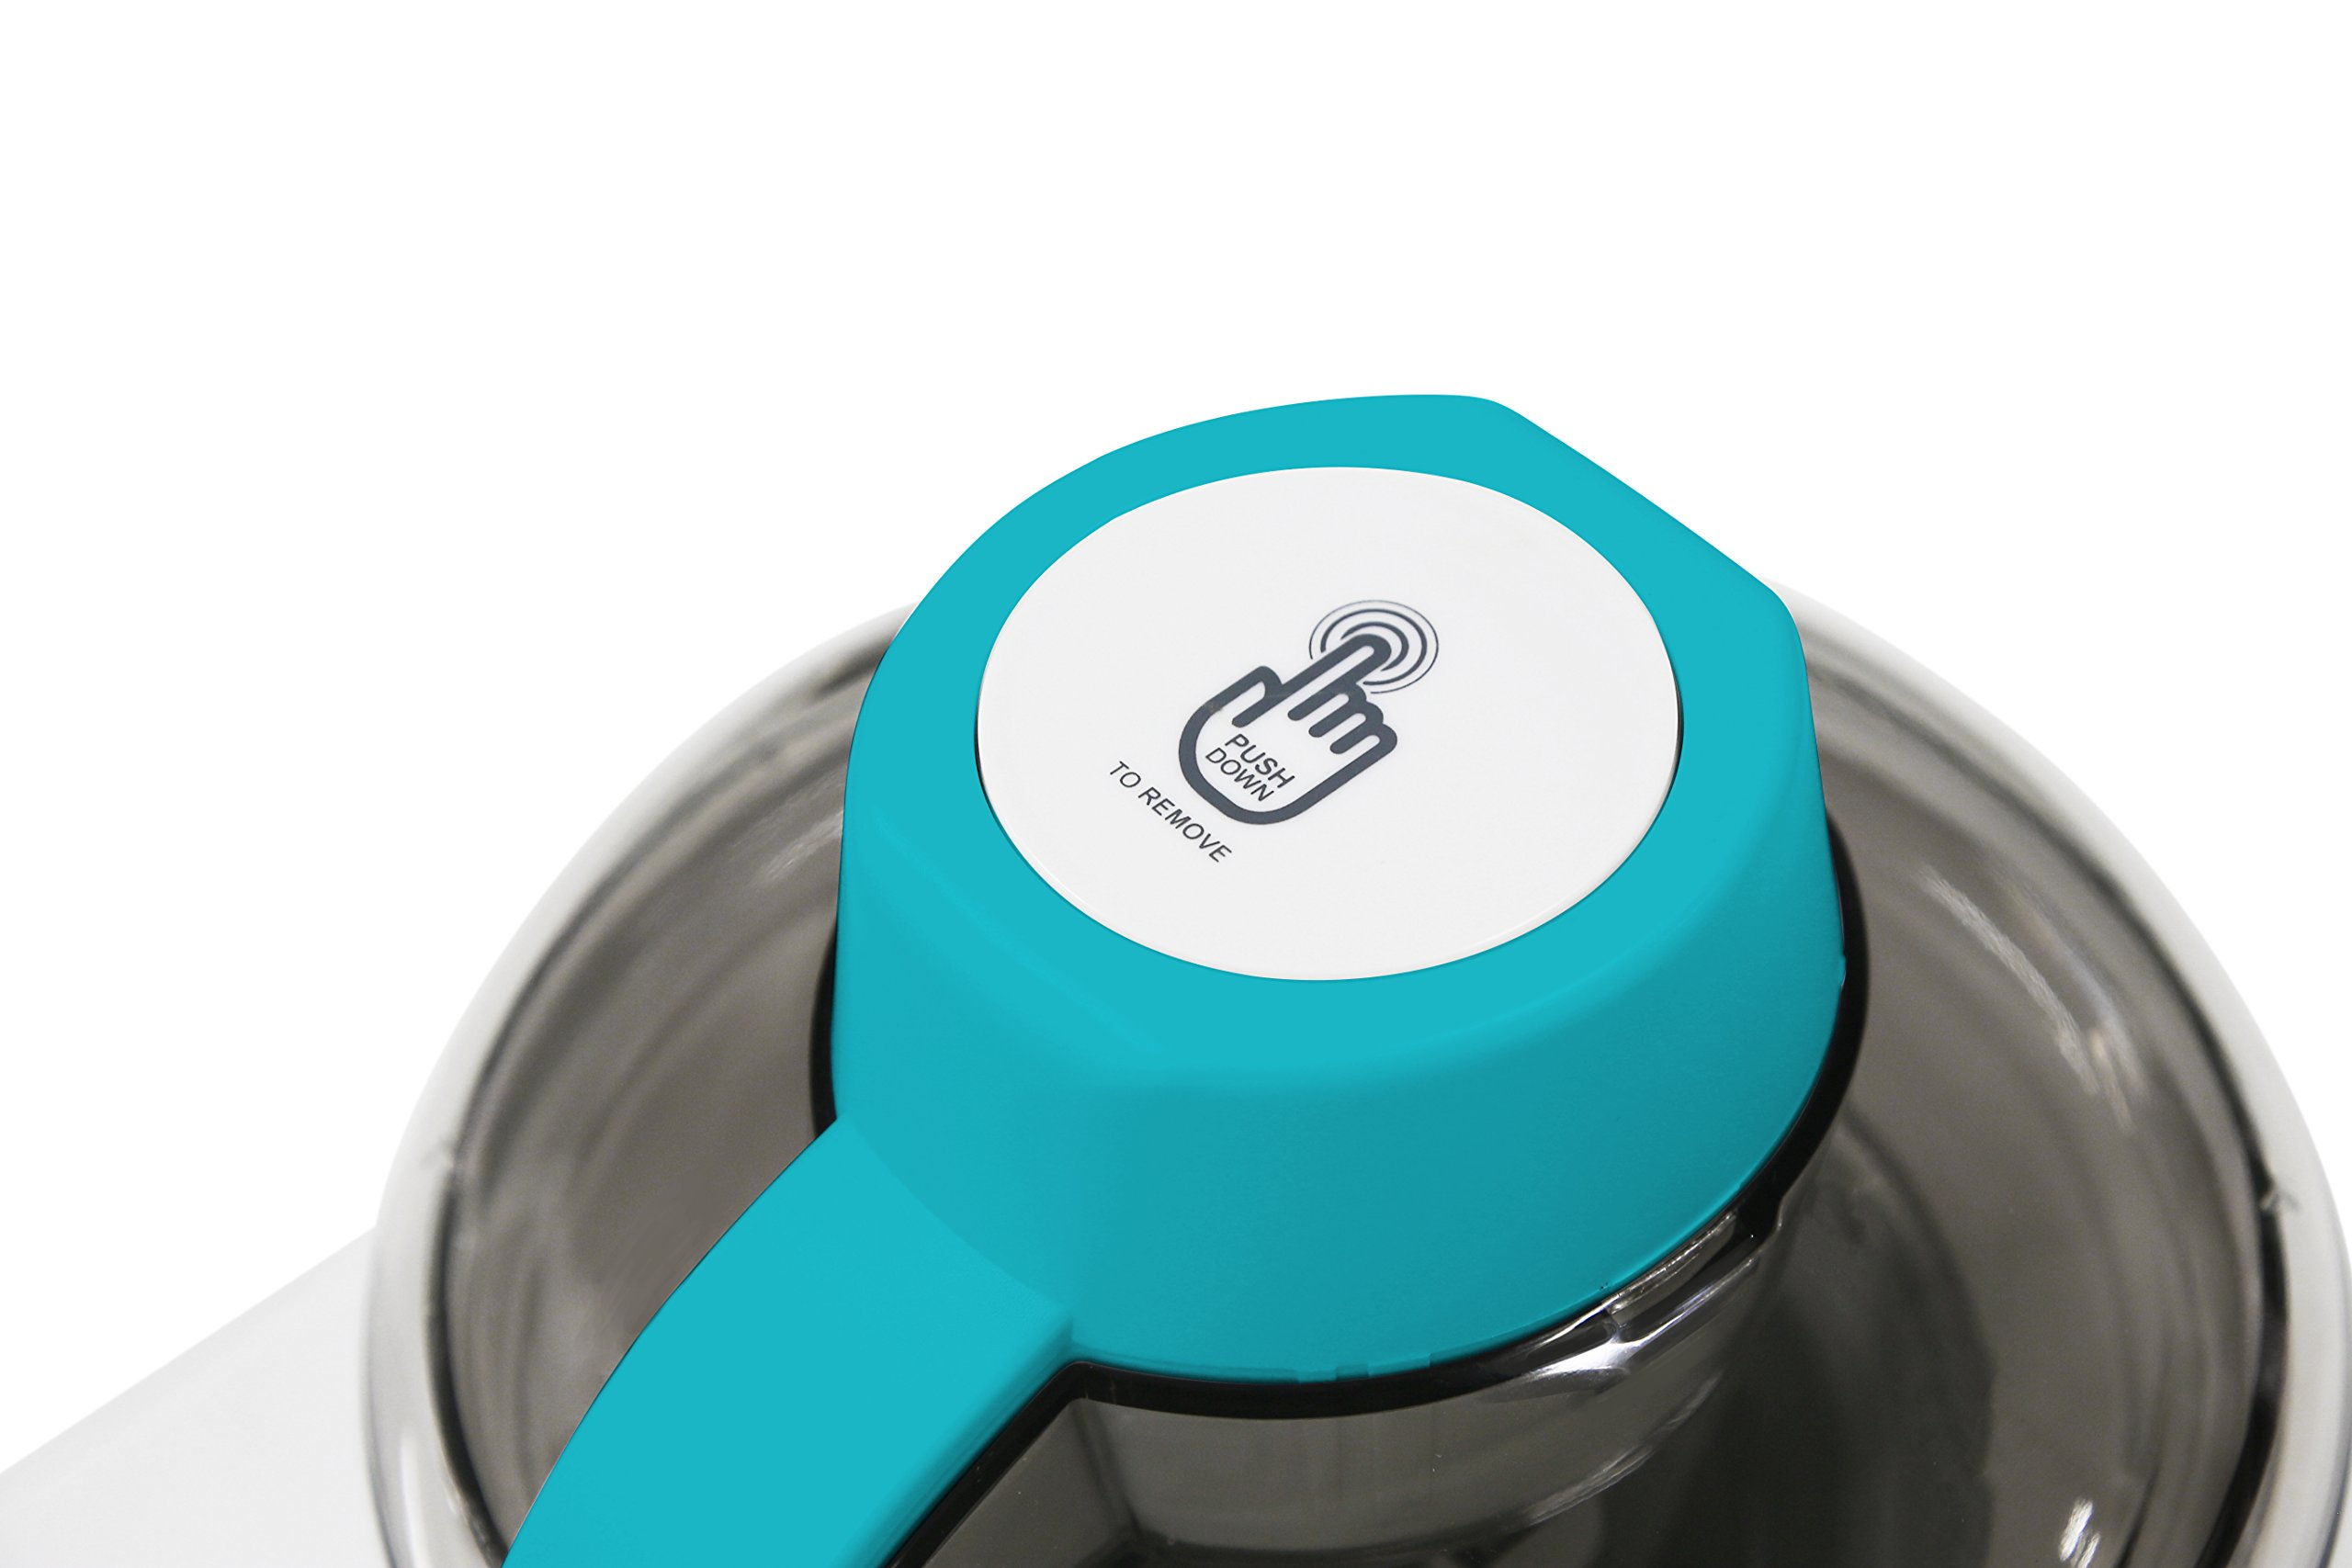 Mr. Freeze EIM-700T Self-Freezing Self-Refrigerating Ice Cream Maker, 1.5 Pint, Turquoise by Maxi-Matic (Image #4)